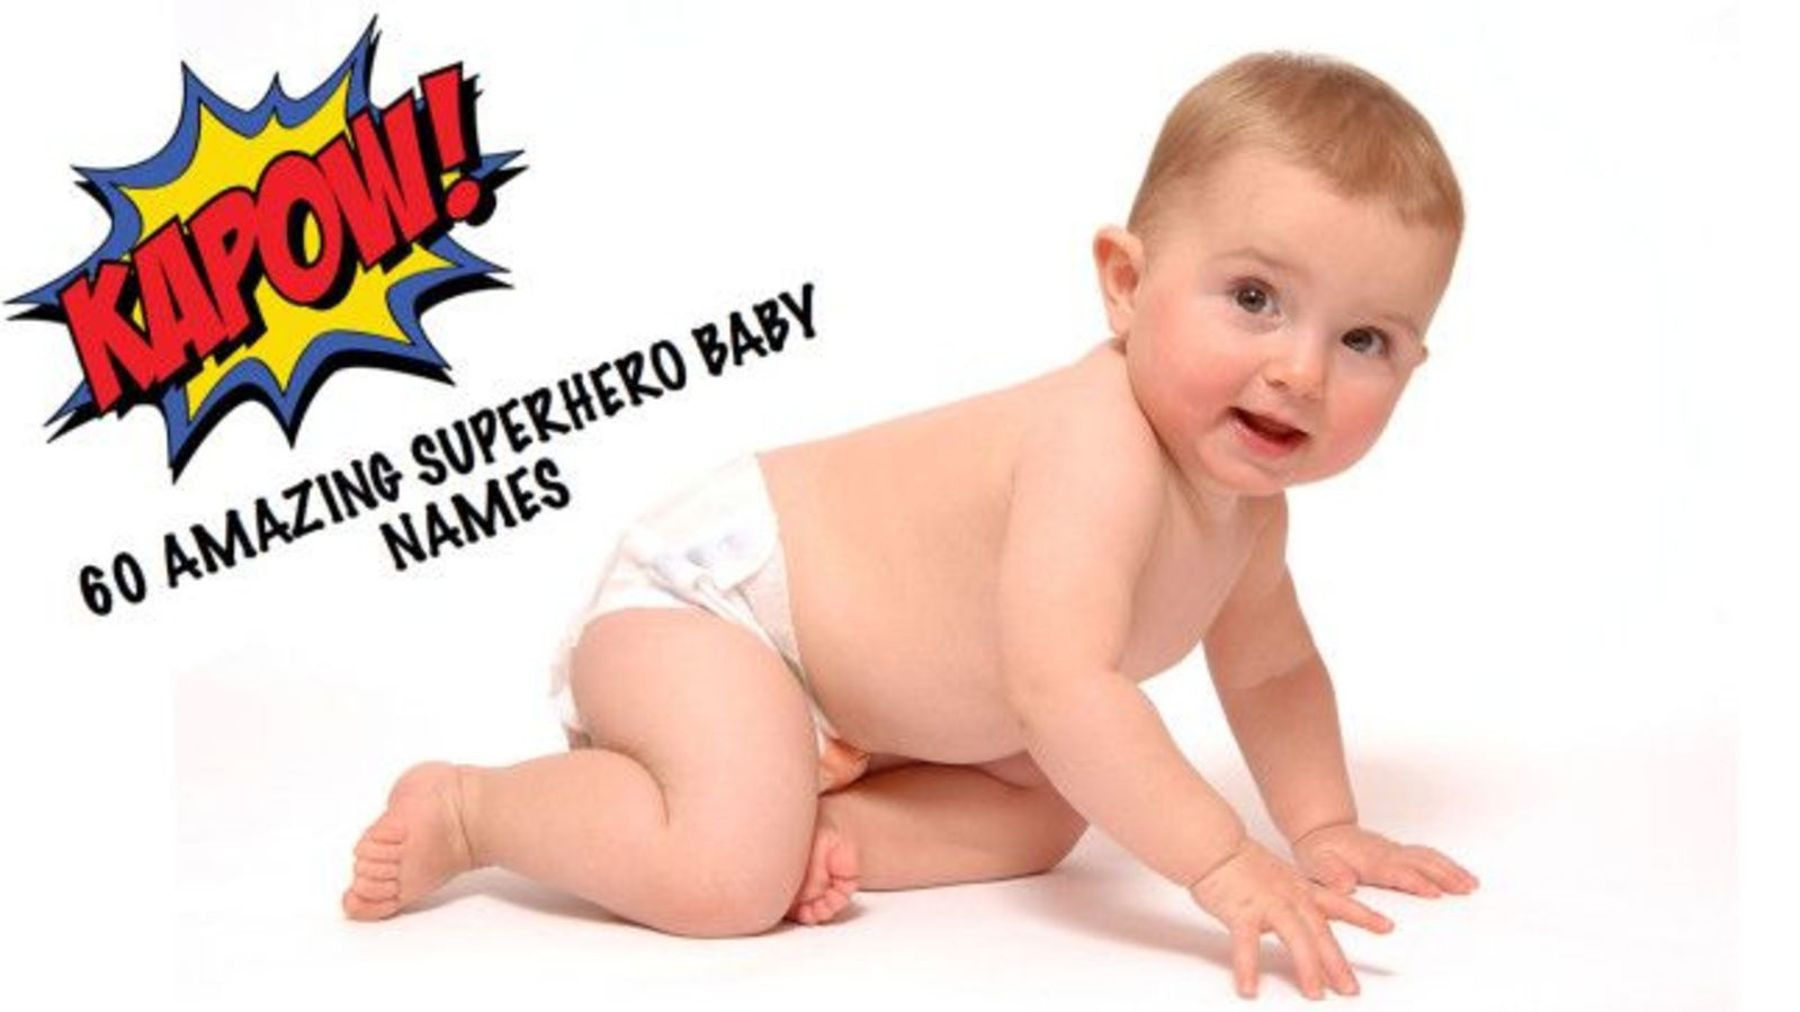 Baby name inspiration: 60 cool superhero baby names - and